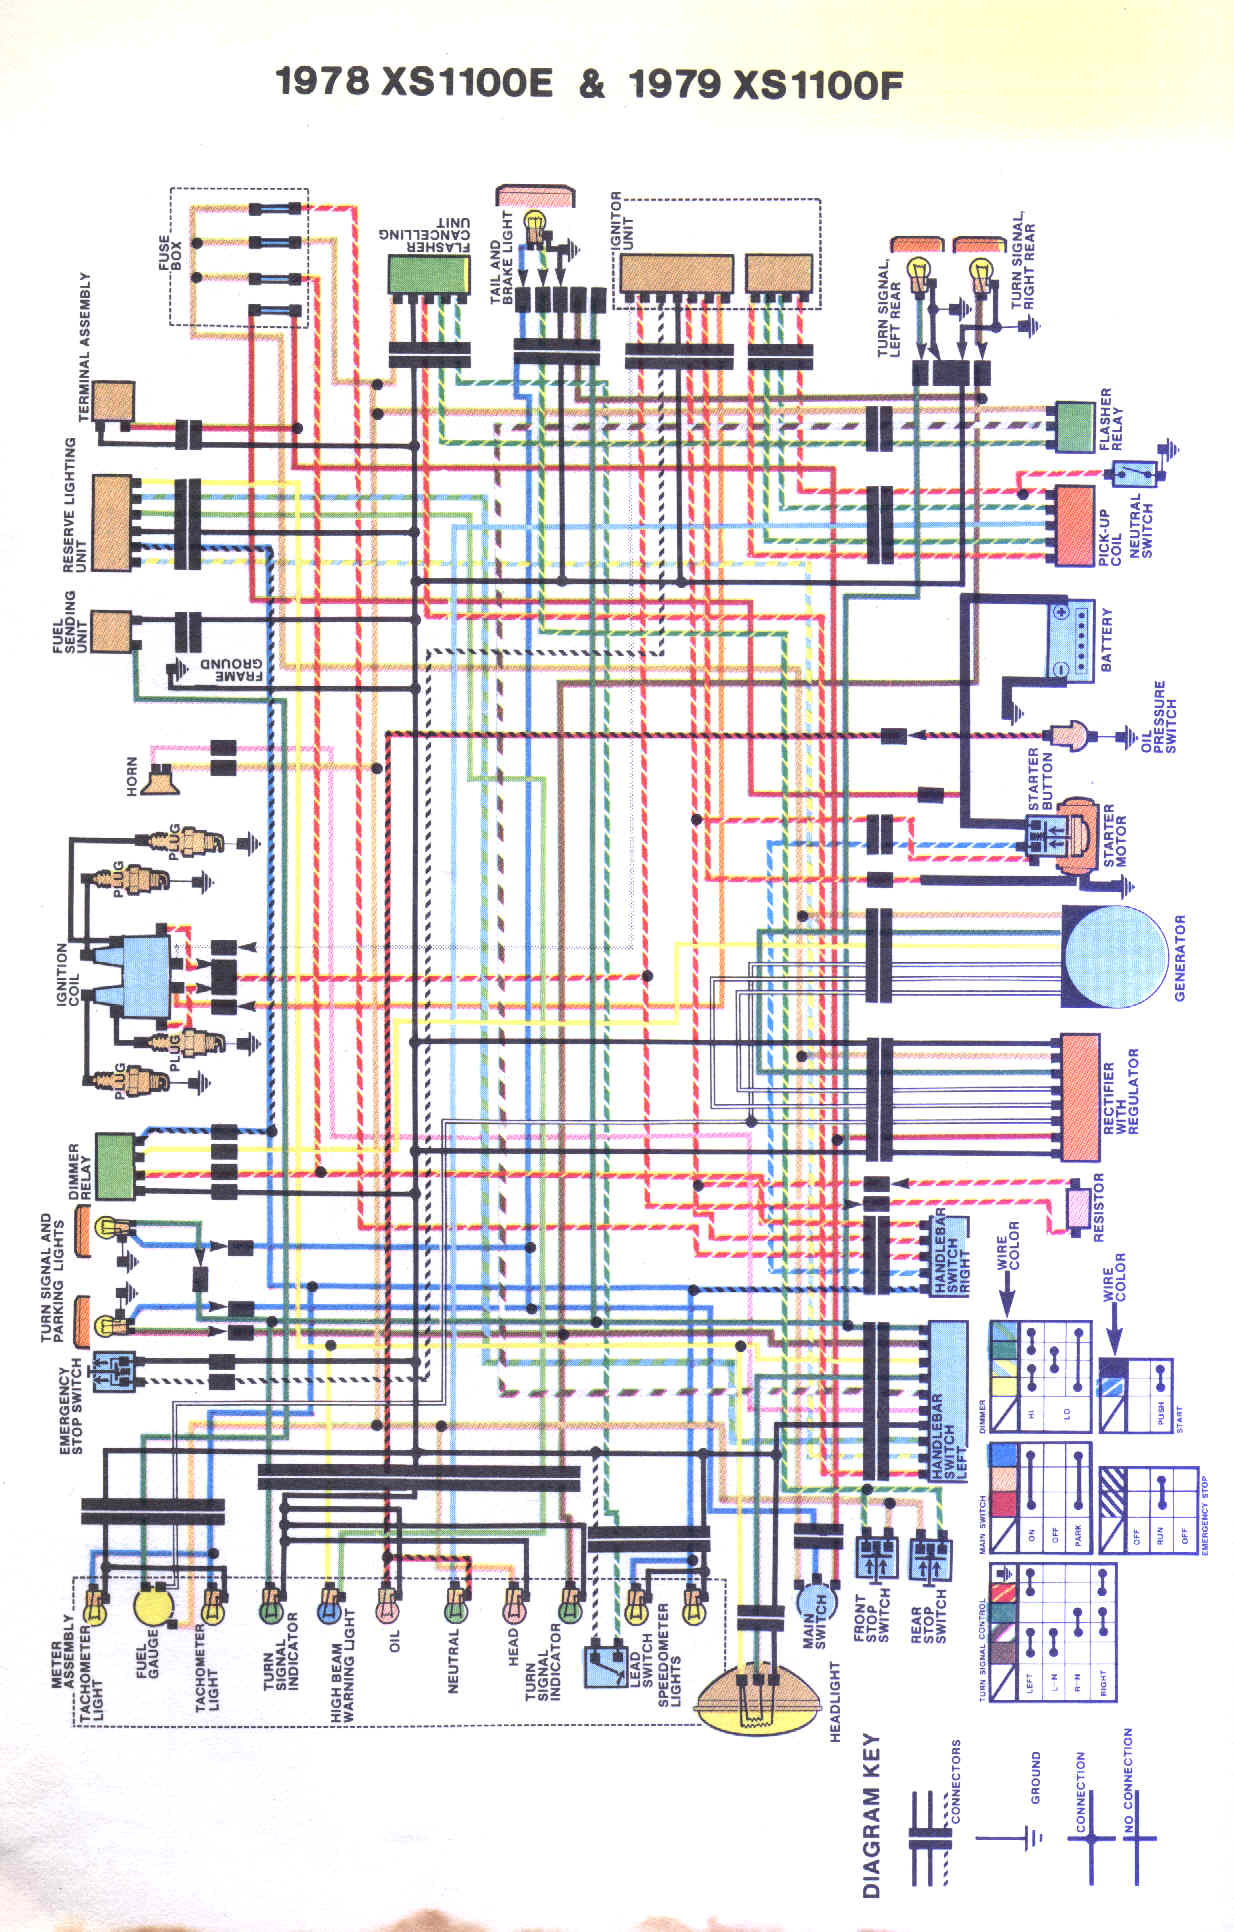 Yamaha 750 Wiring Diagram - Stereo Wiring Diagram For 2002 Chevy Impala  fusebox-making.au-delice-limousin.fr | 1980 Yamaha Xs850 Wiring Diagram |  | Bege Place Wiring Diagram - Bege Wiring Diagram Full Edition